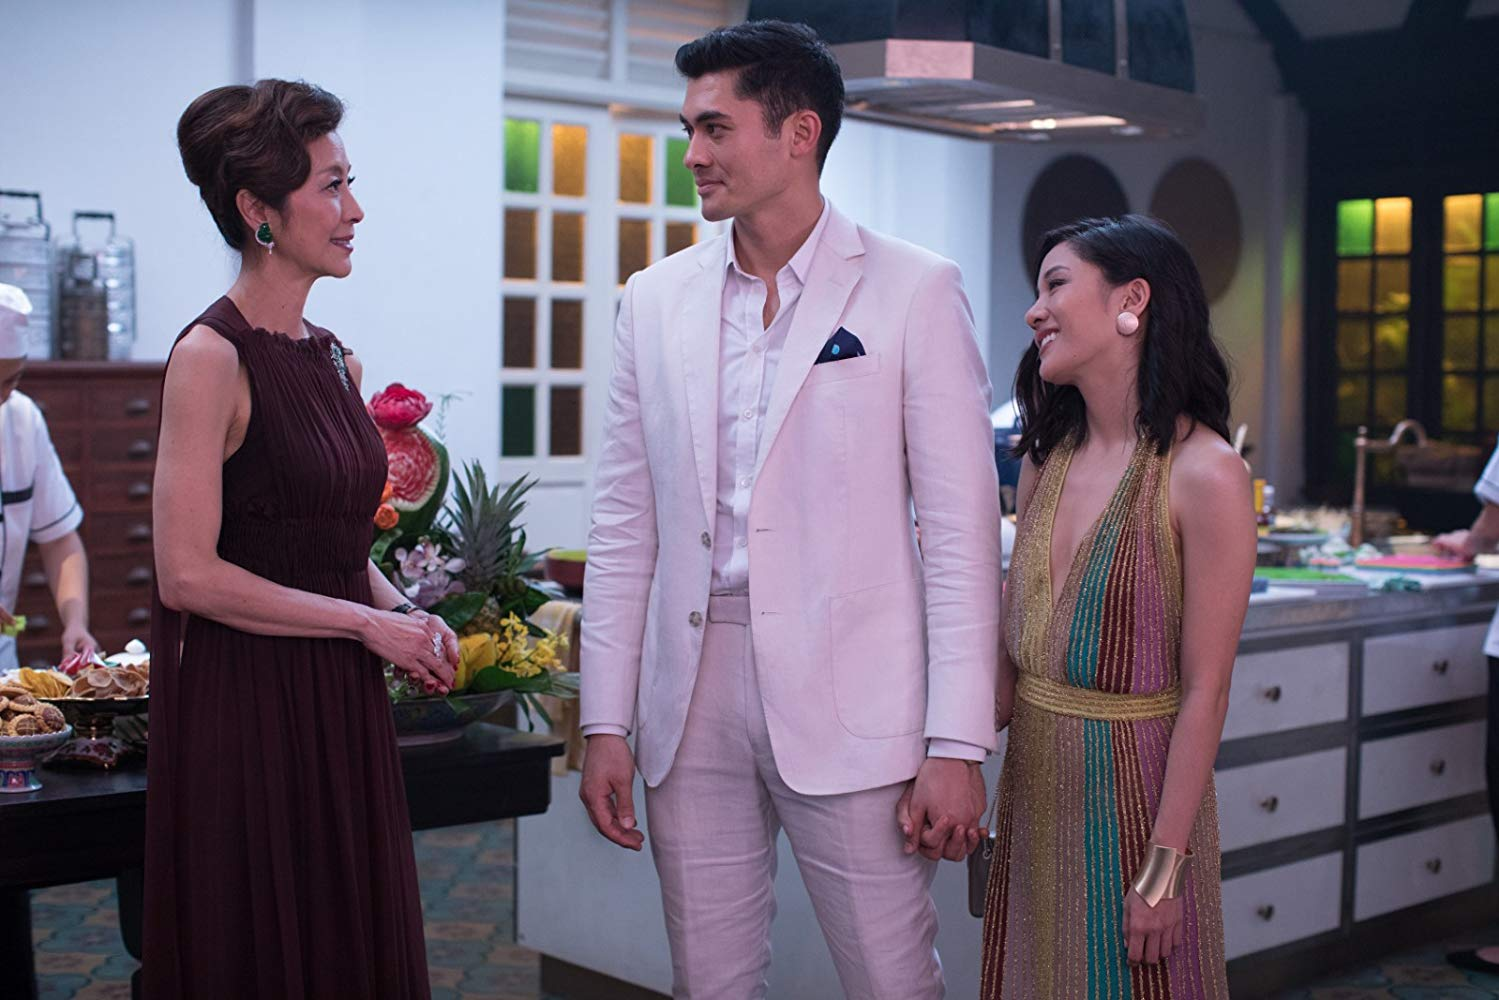 Caption: Crazy Rich Asians